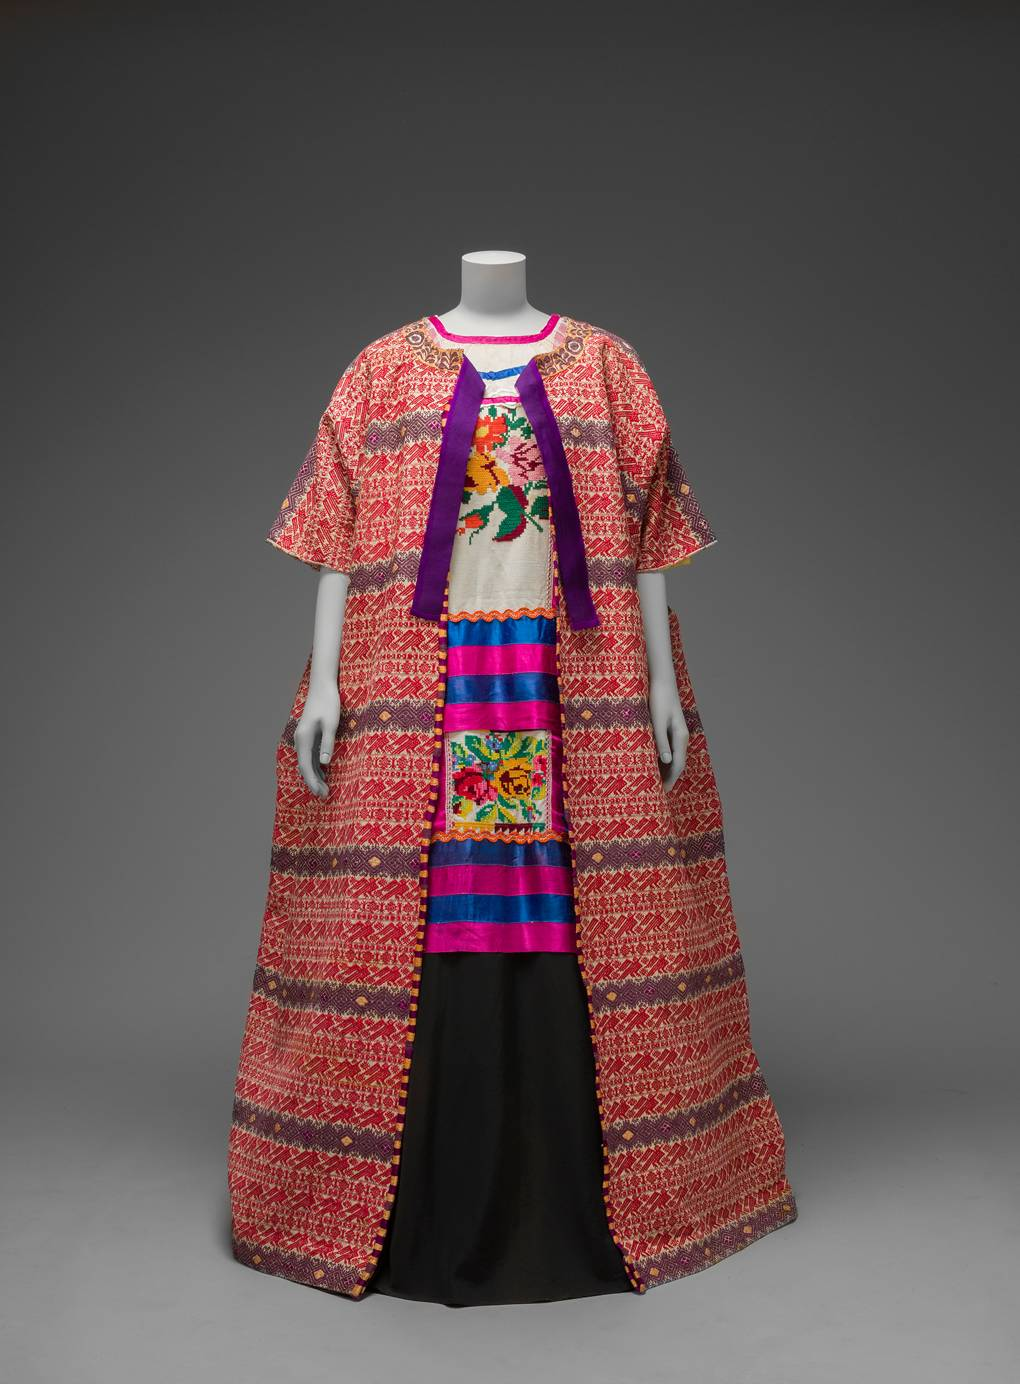 Frida Kahlo exhibition at the Victoria and Albert Museum London dress